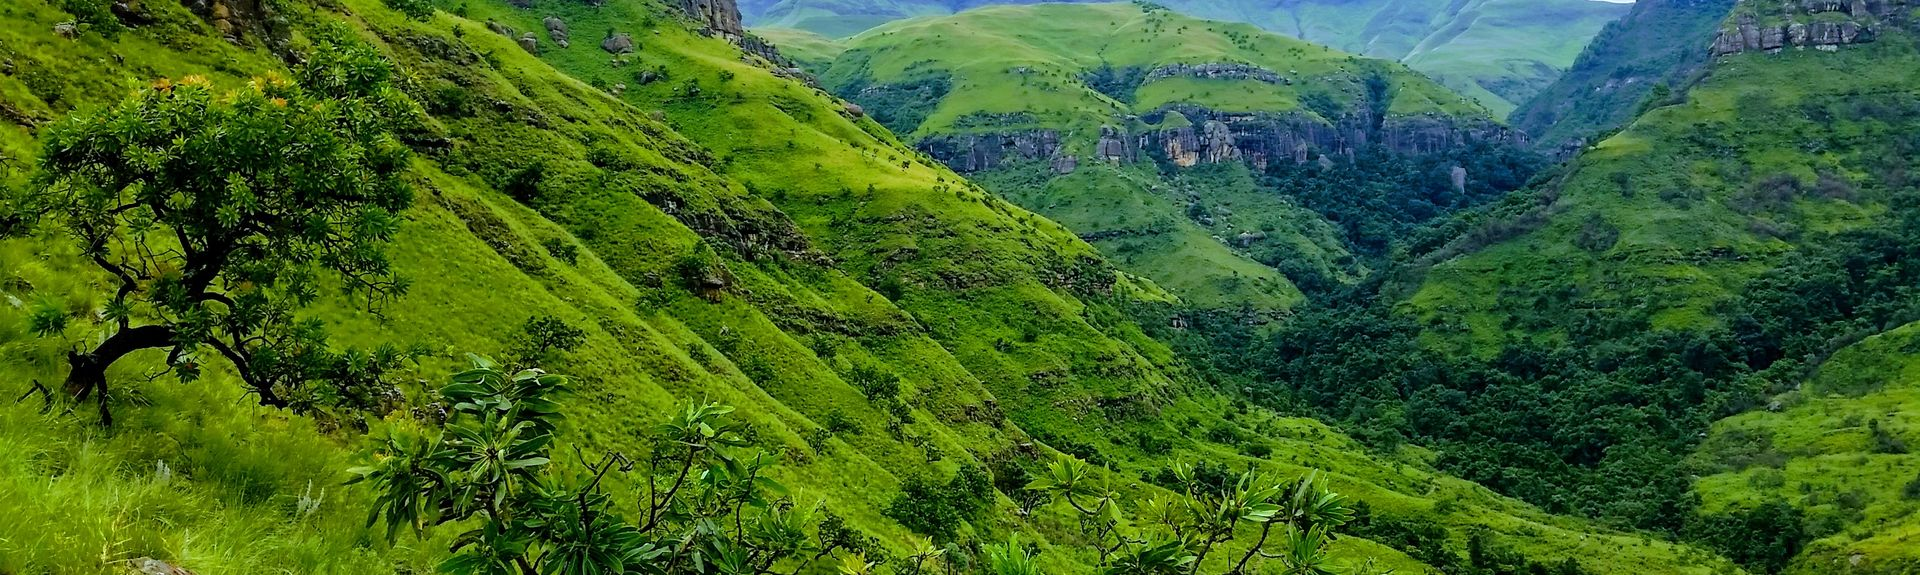 Free State, South Africa